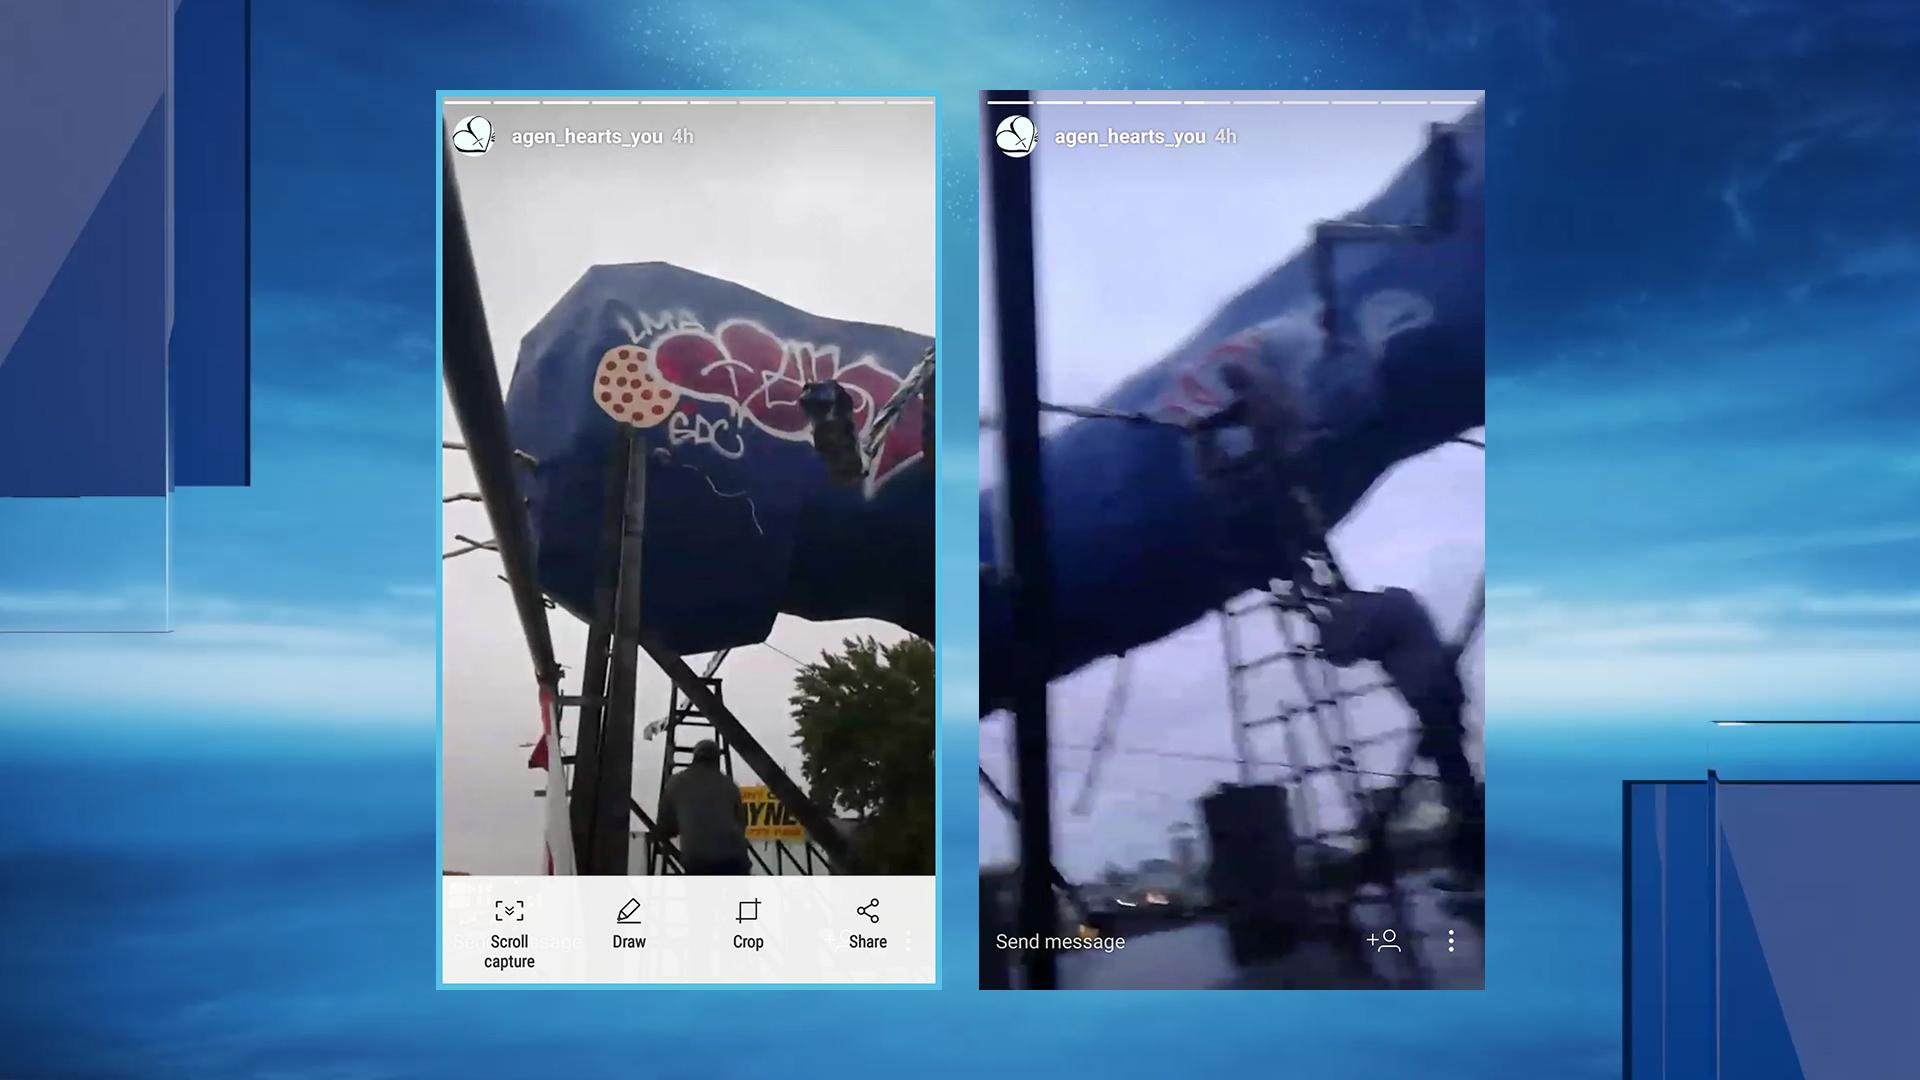 Images shared by RI Problems with NBC 10 News purport to show the vandals who spray-painted graffiti on the Big Blue Bug. (RI Problems)